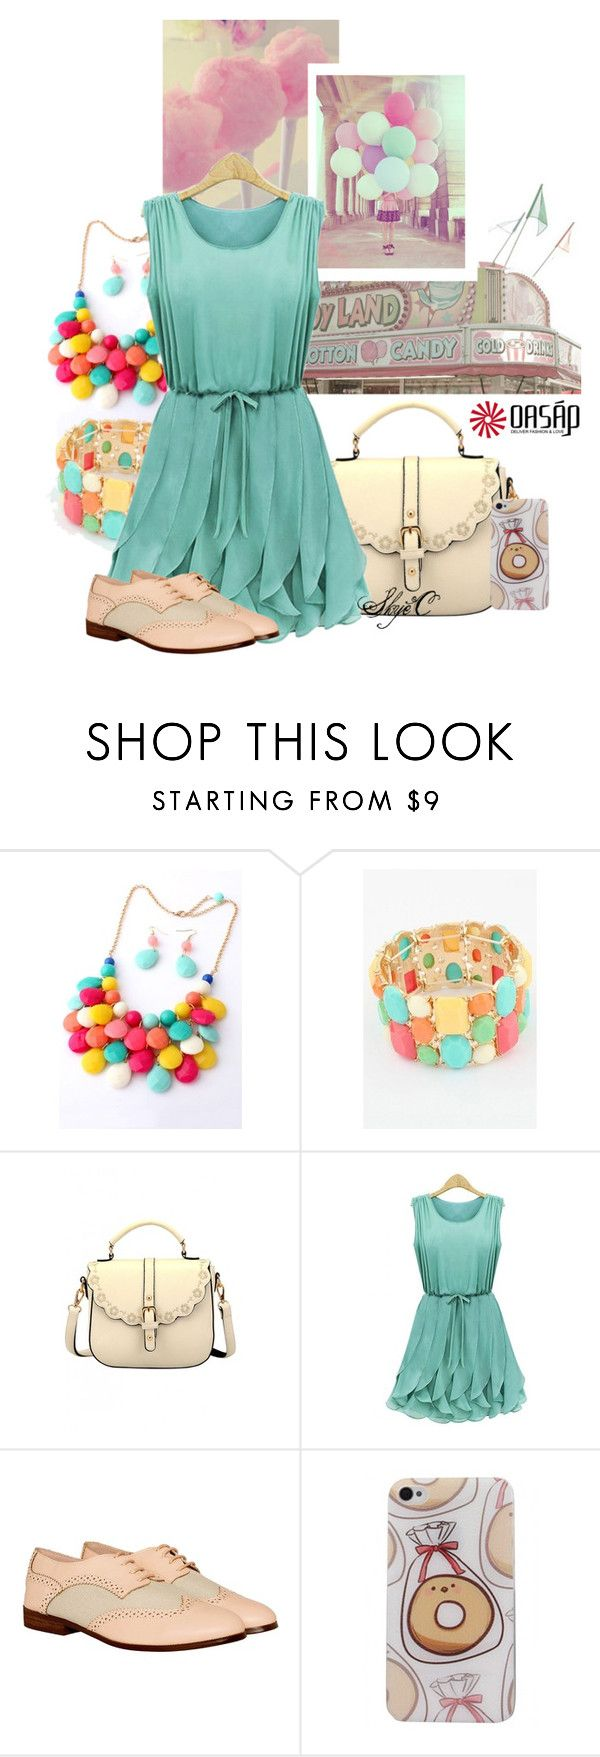 To acquire Inspiration Inspirationfashion disneys wreck it ralph pictures trends